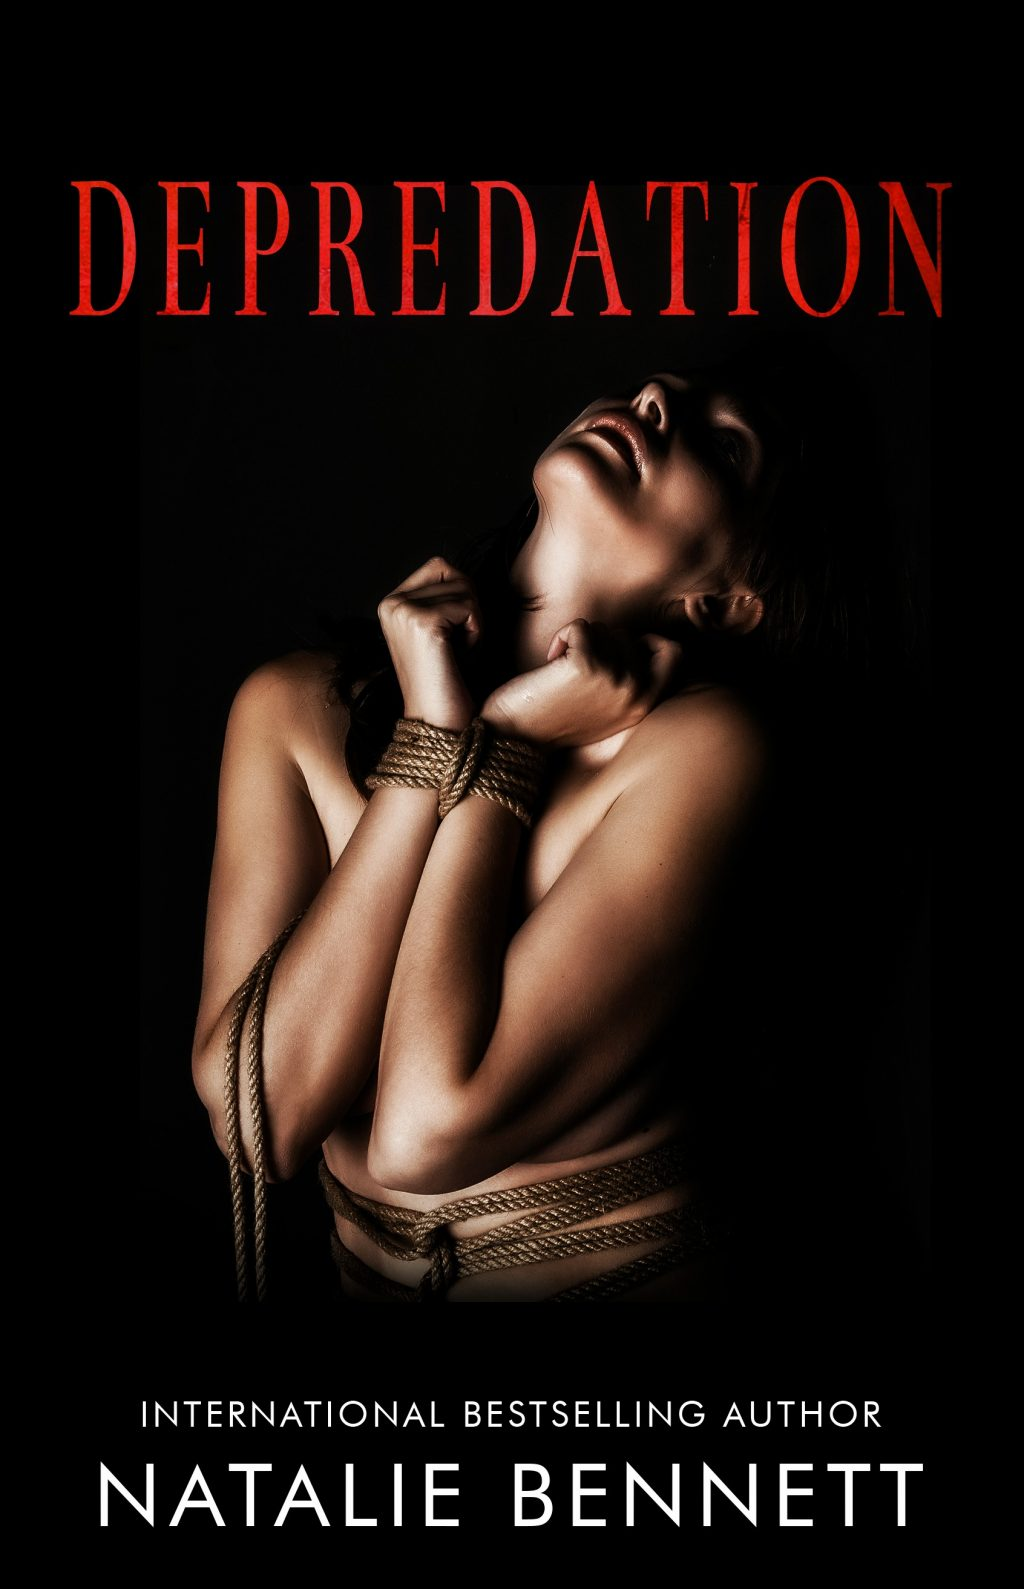 Depredation by Natalie Bennett